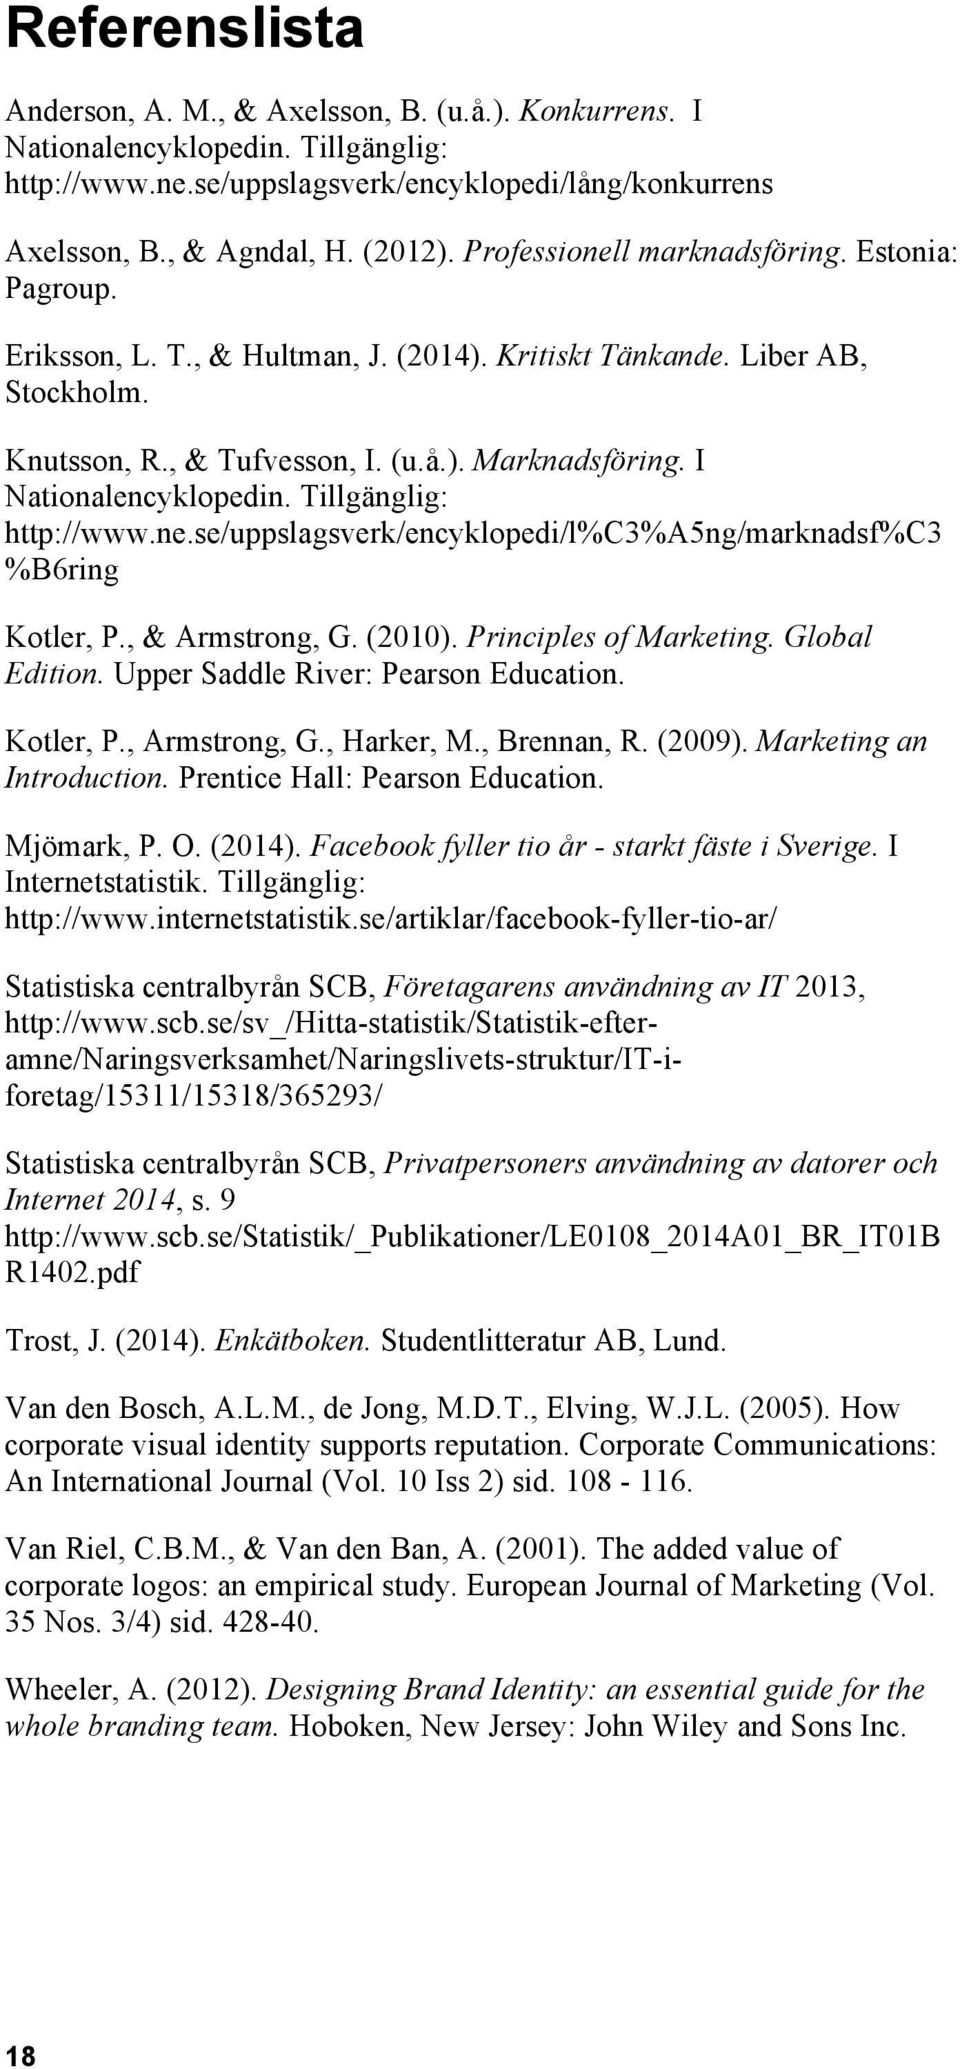 I Nationalencyklopedin. Tillgänglig: http://www.ne.se/uppslagsverk/encyklopedi/l%c3%a5ng/marknadsf%c3 %B6ring Kotler, P., & Armstrong, G. (2010). Principles of Marketing. Global Edition.